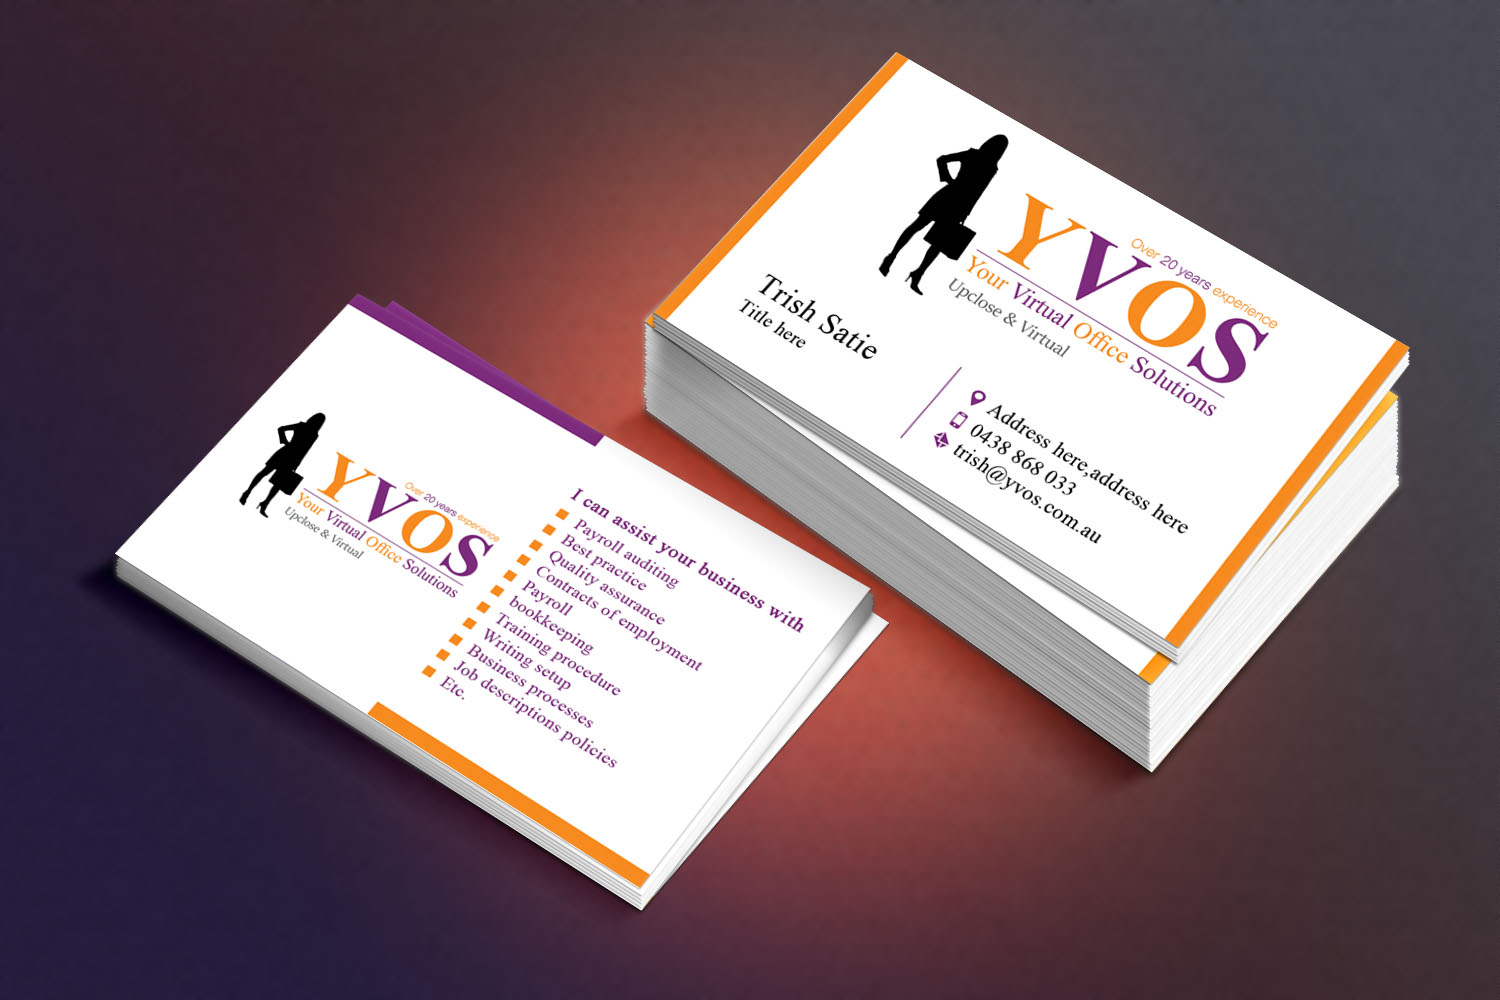 Modern professional business business card design for yvos your business card design by sandaruwan for yvos your virtual office solutions design 6824379 reheart Gallery